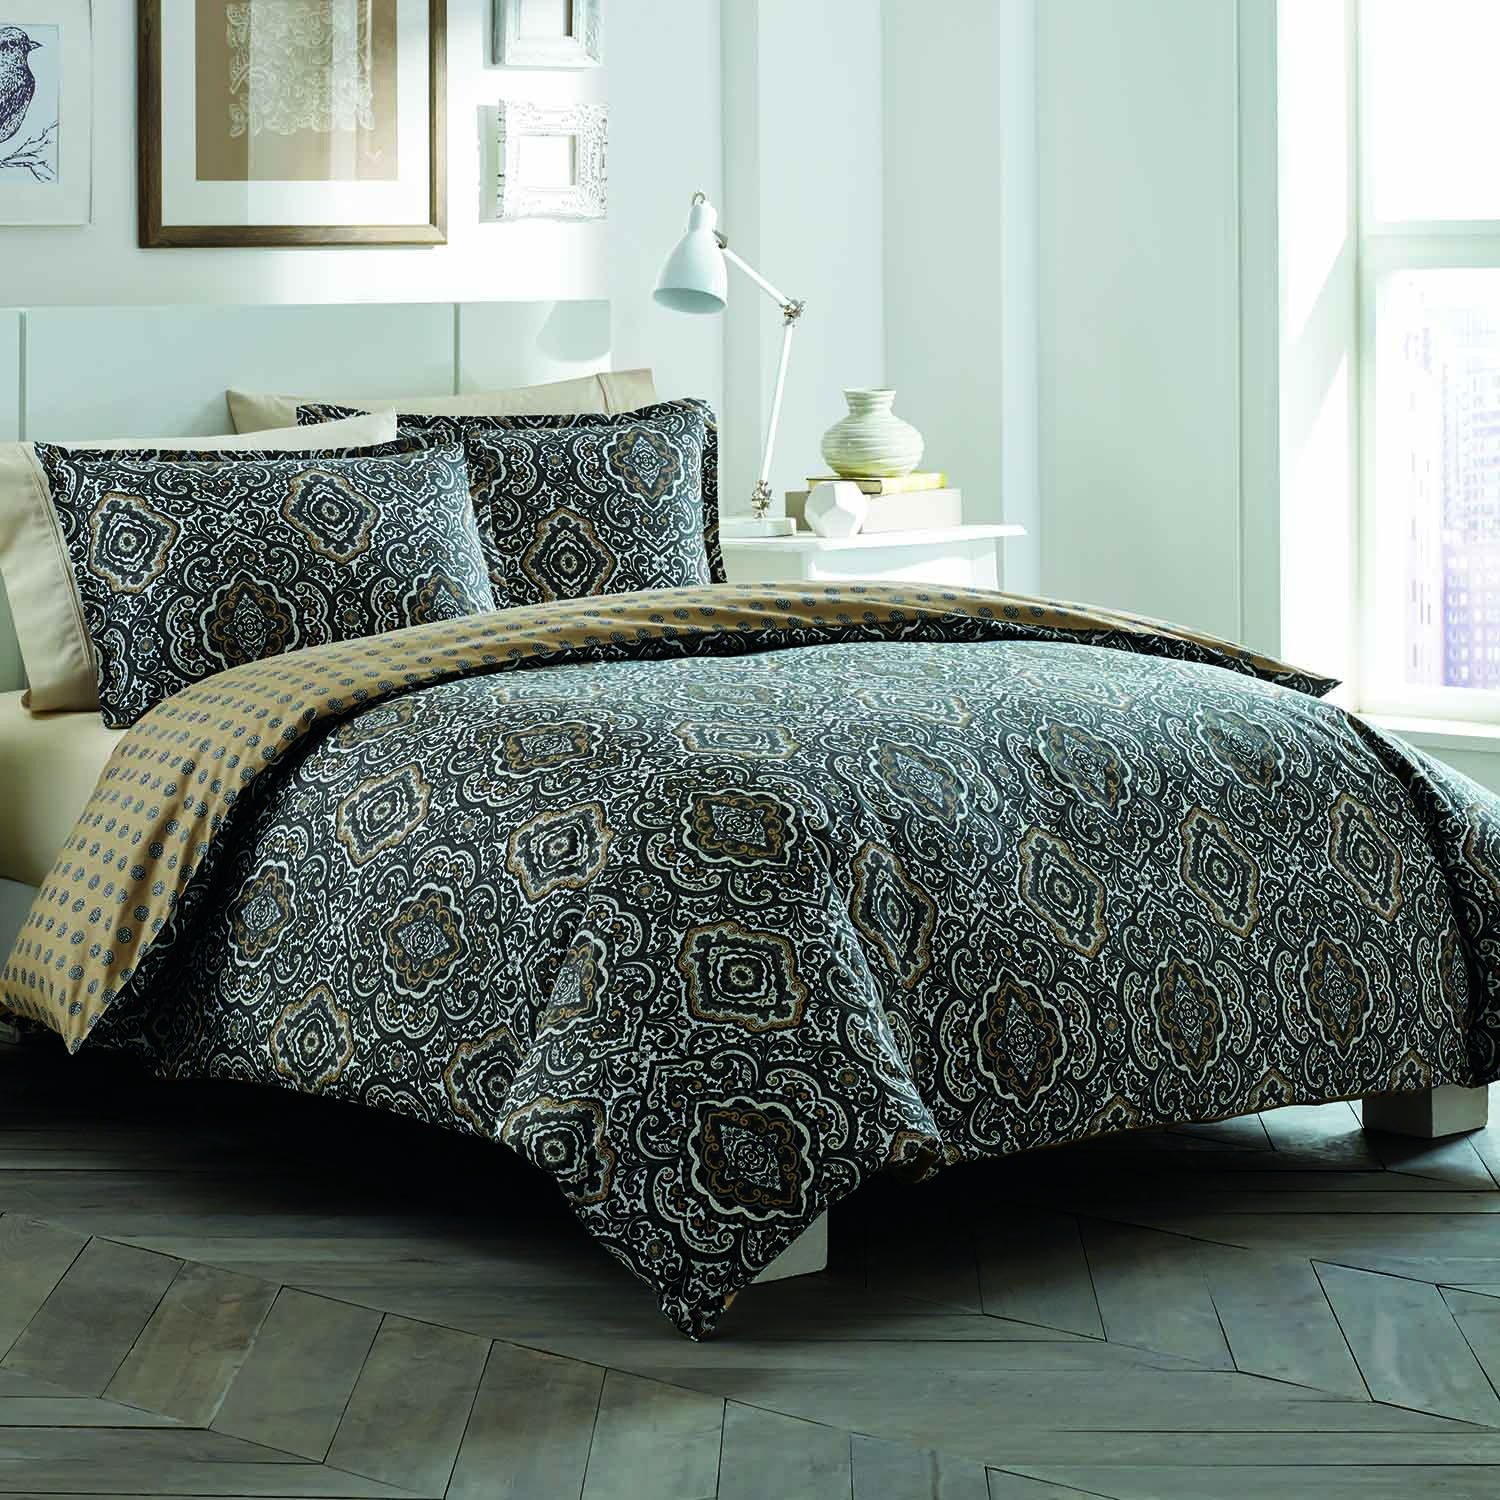 city scene bedding sets  ease bedding with style - city scene milan charcoal duvetsham set charcoal twin